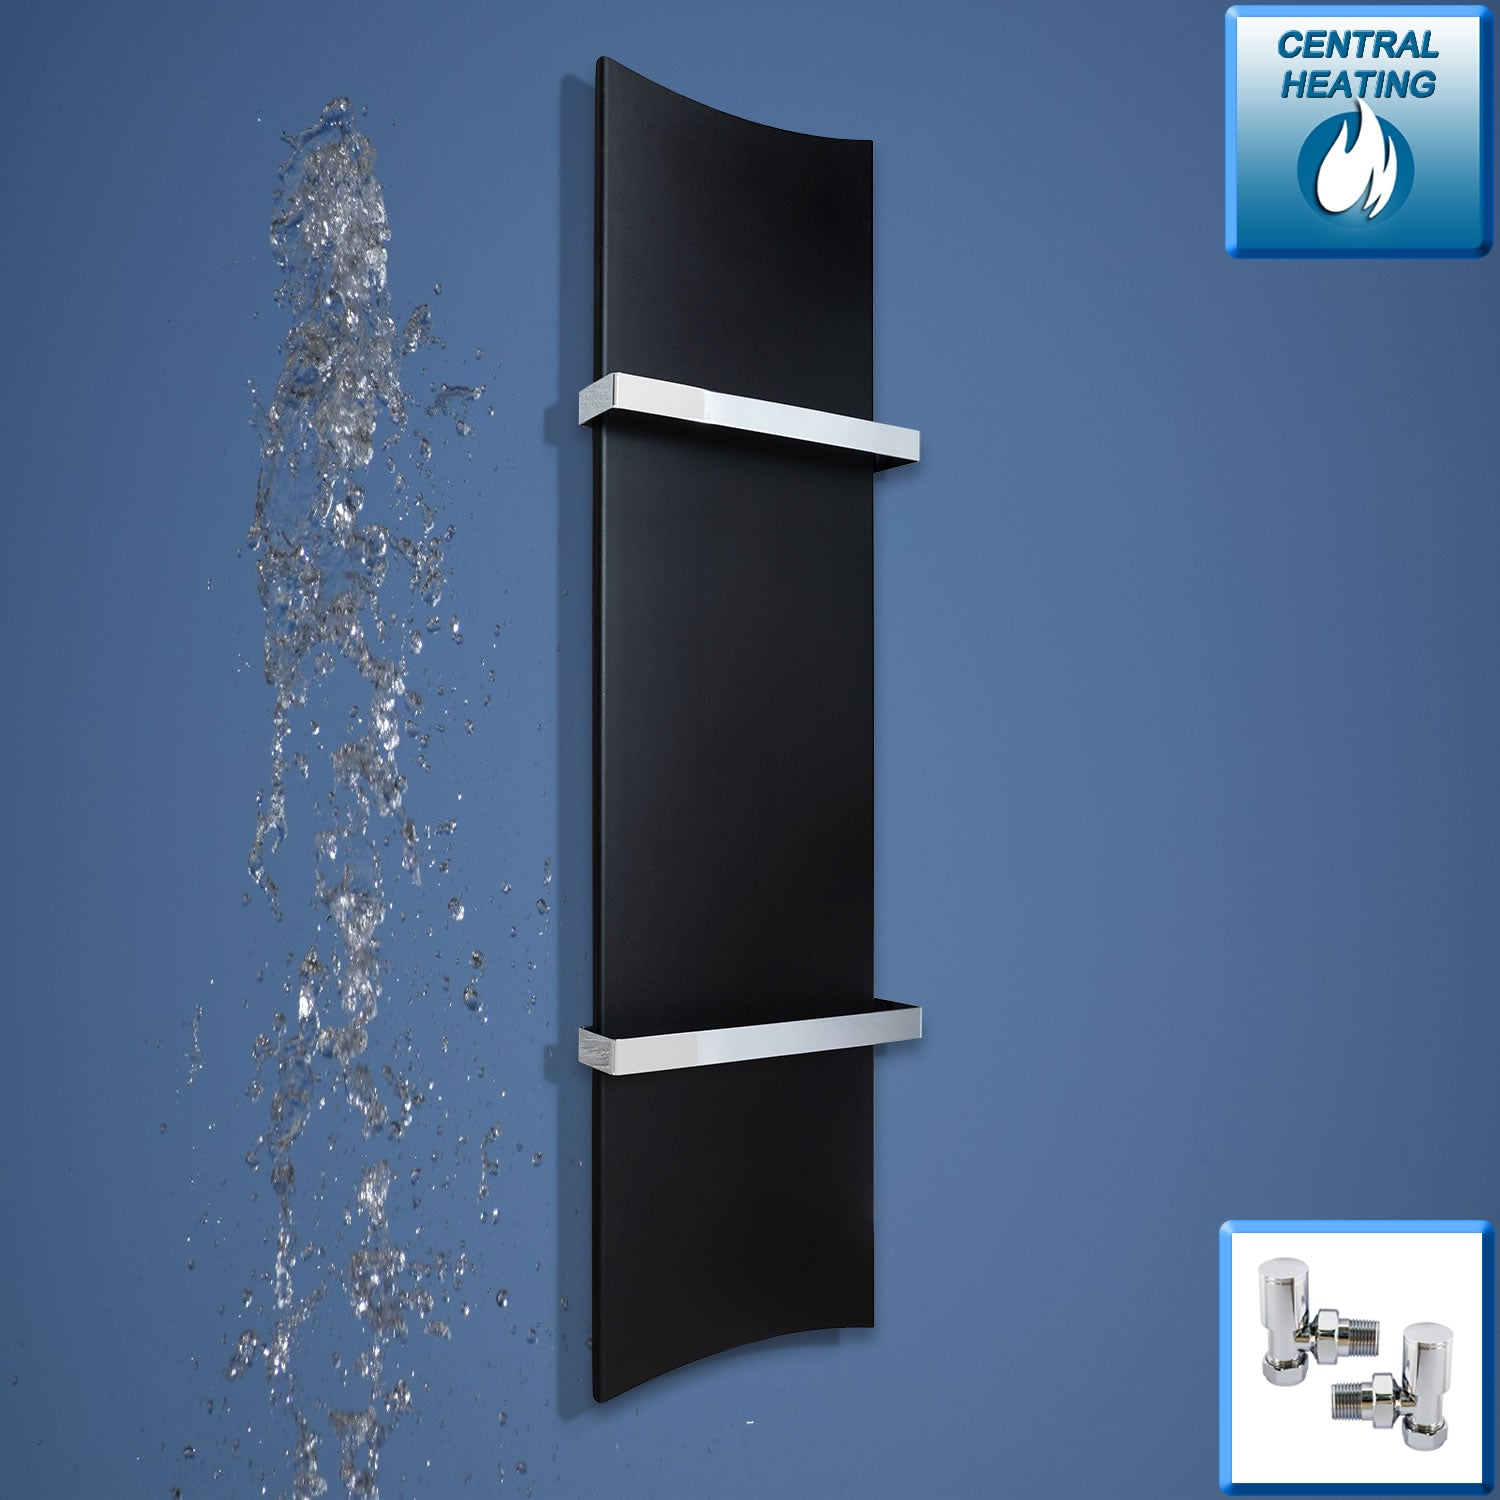 300mm Wide 1200mm High Black Designer Heated Towel Rail Radiator Bone Style,Central Heating With Angled Valves